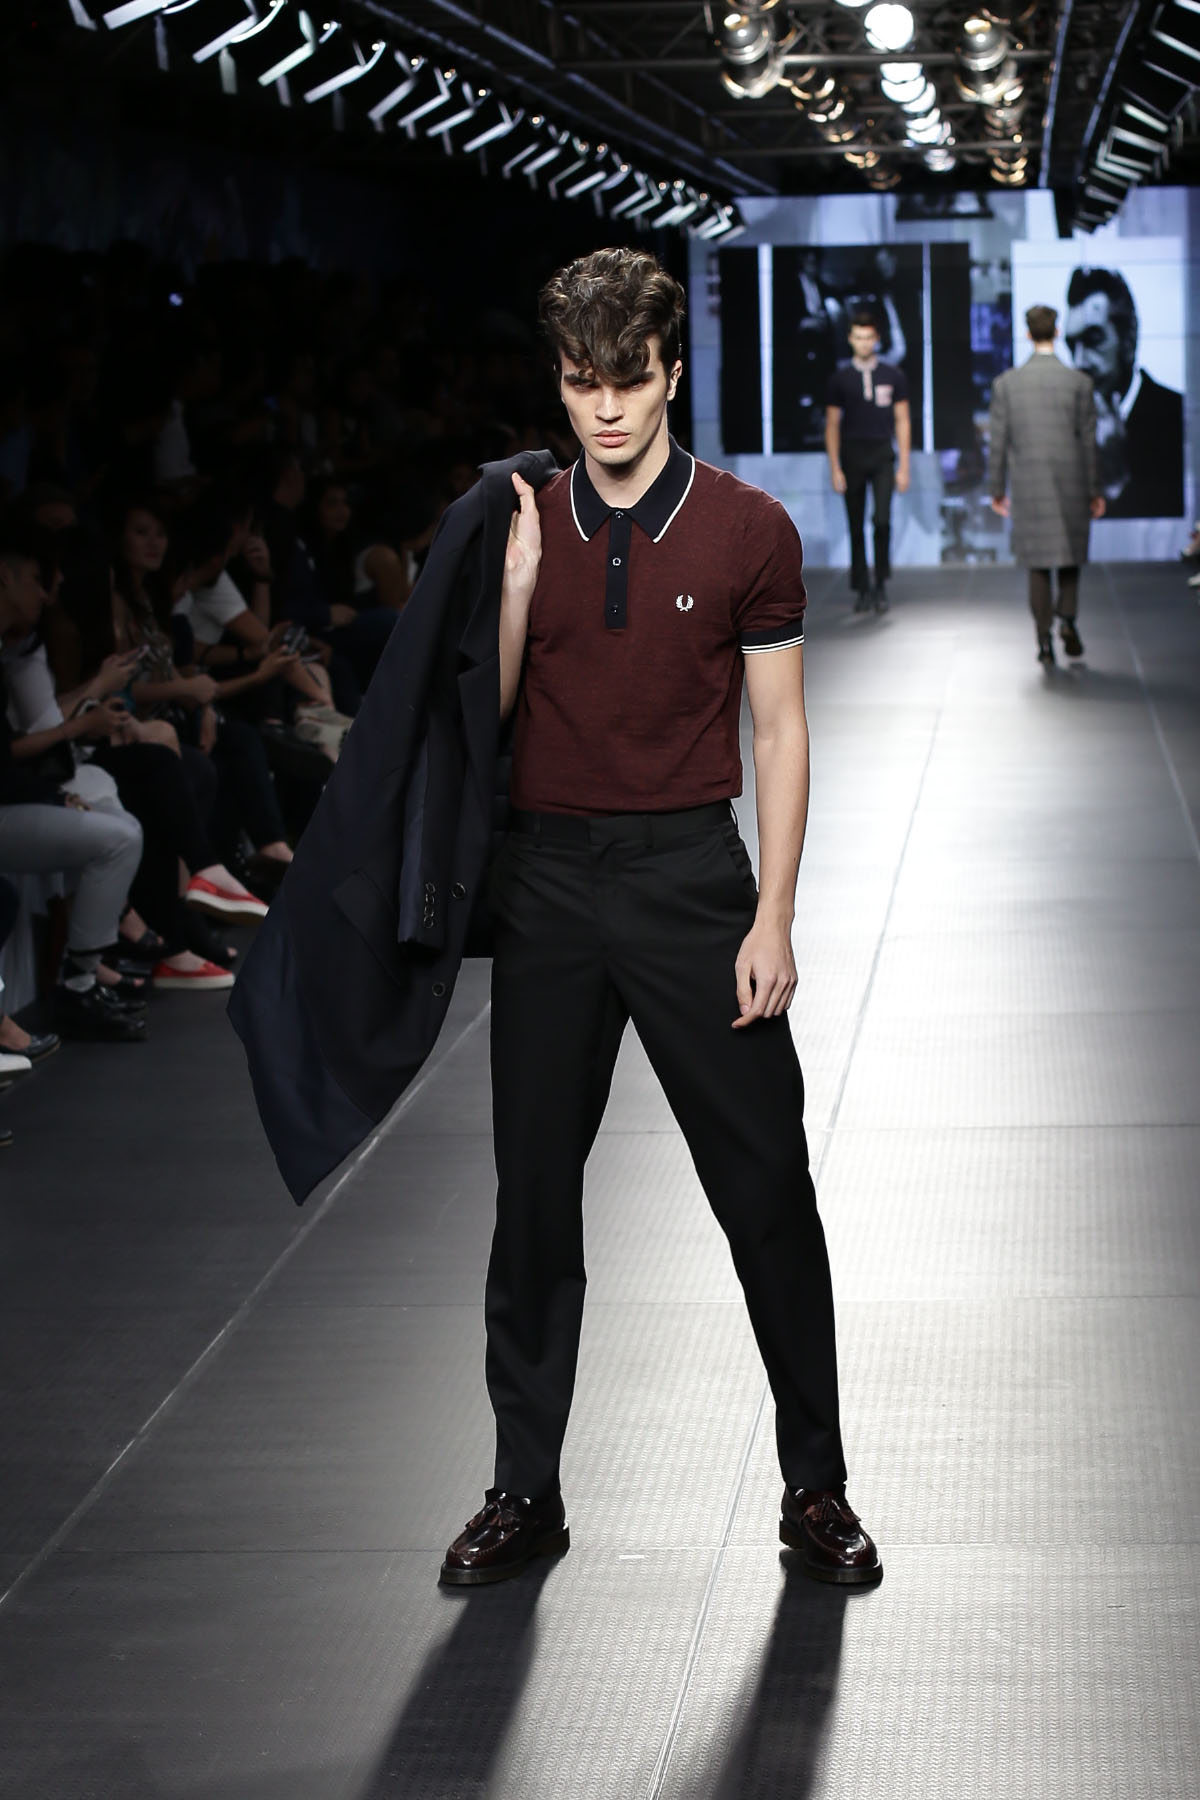 Top 5 Looks from Fred Perry at PIMFW | DA MAN Magazine